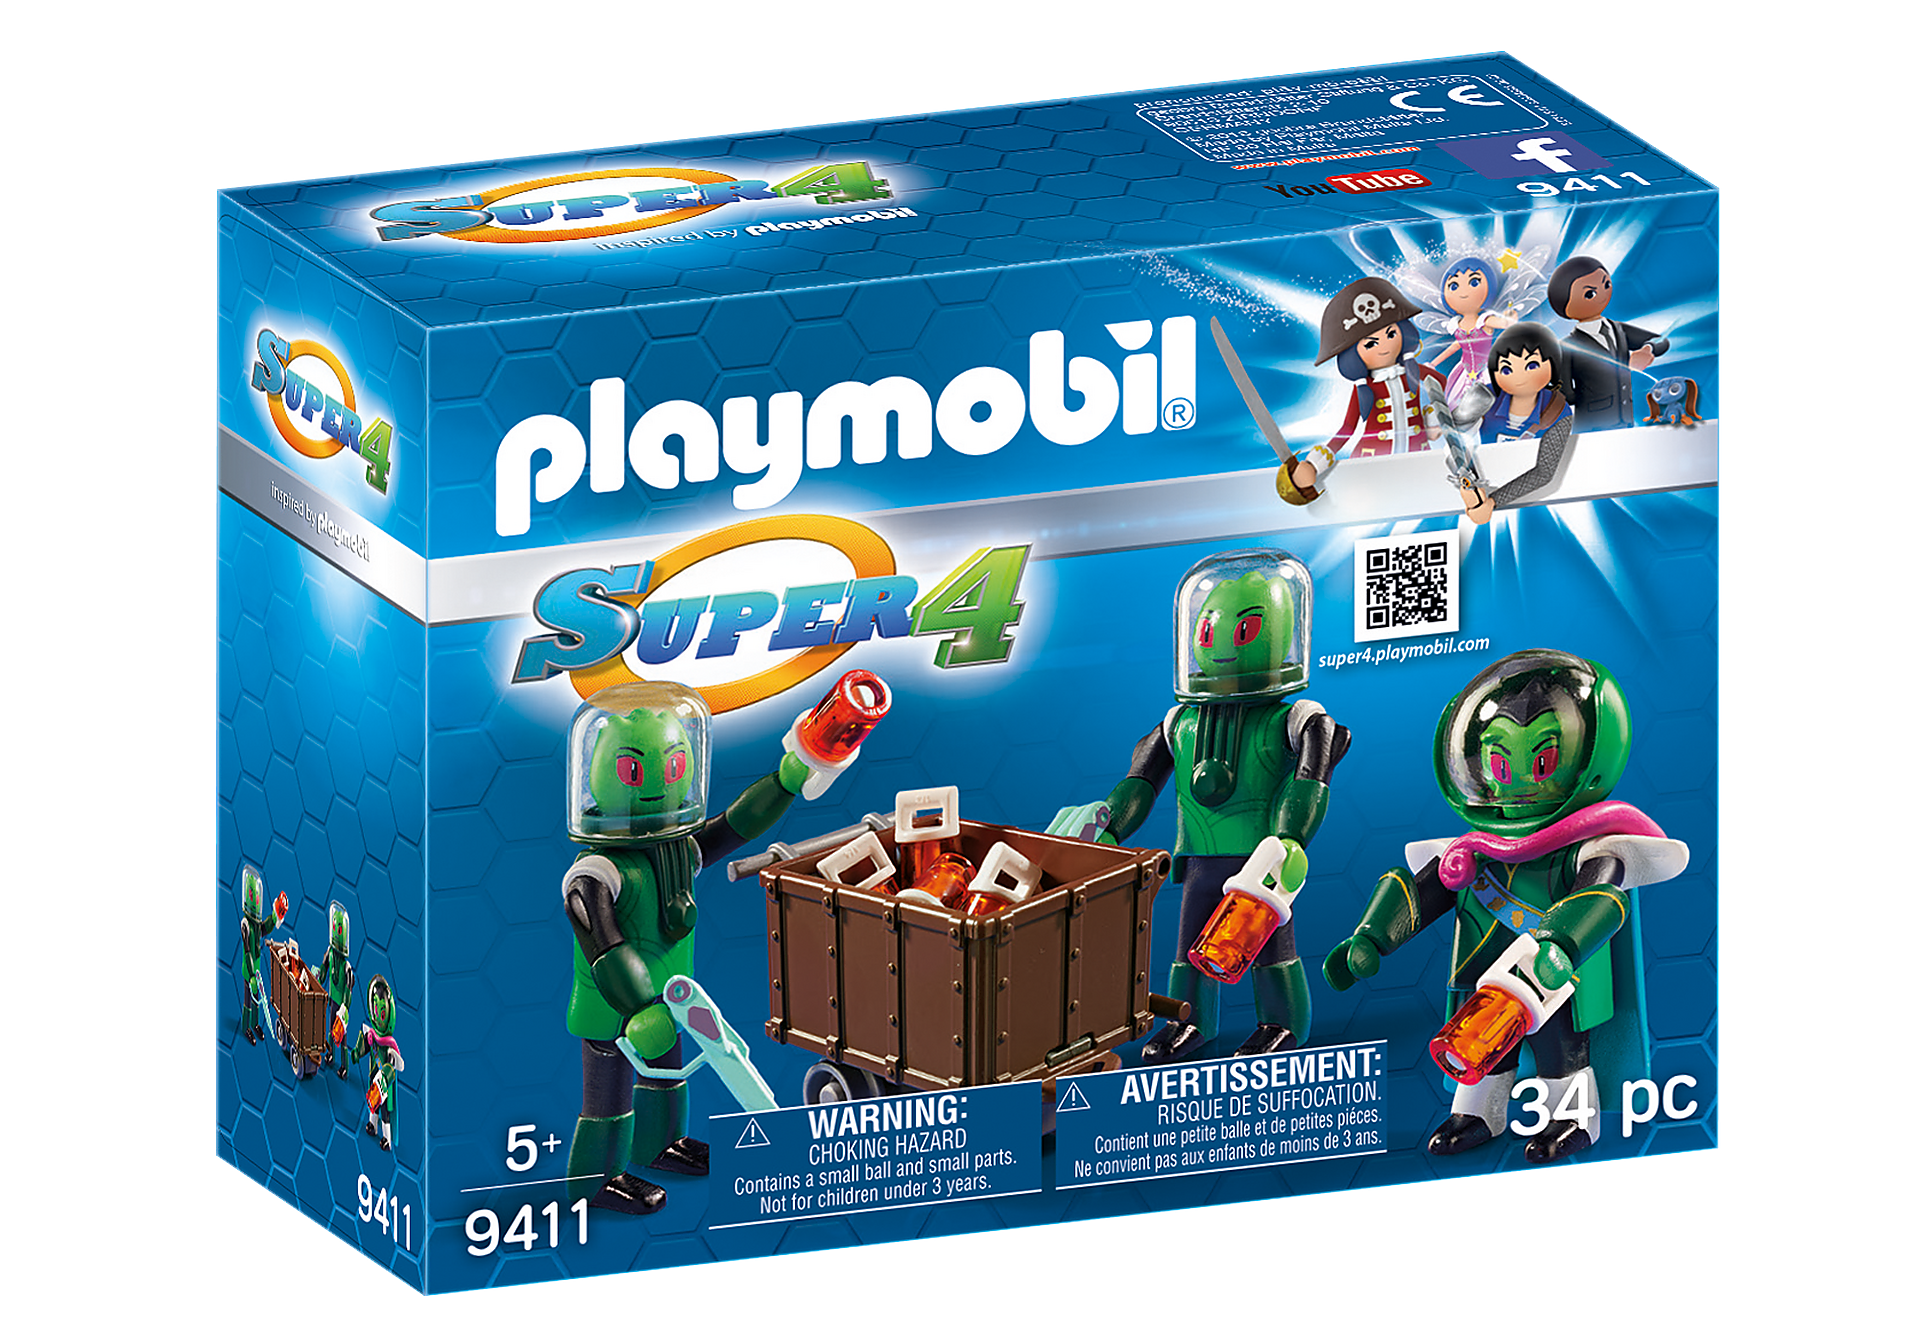 http://media.playmobil.com/i/playmobil/9411_product_box_front/Sykronier